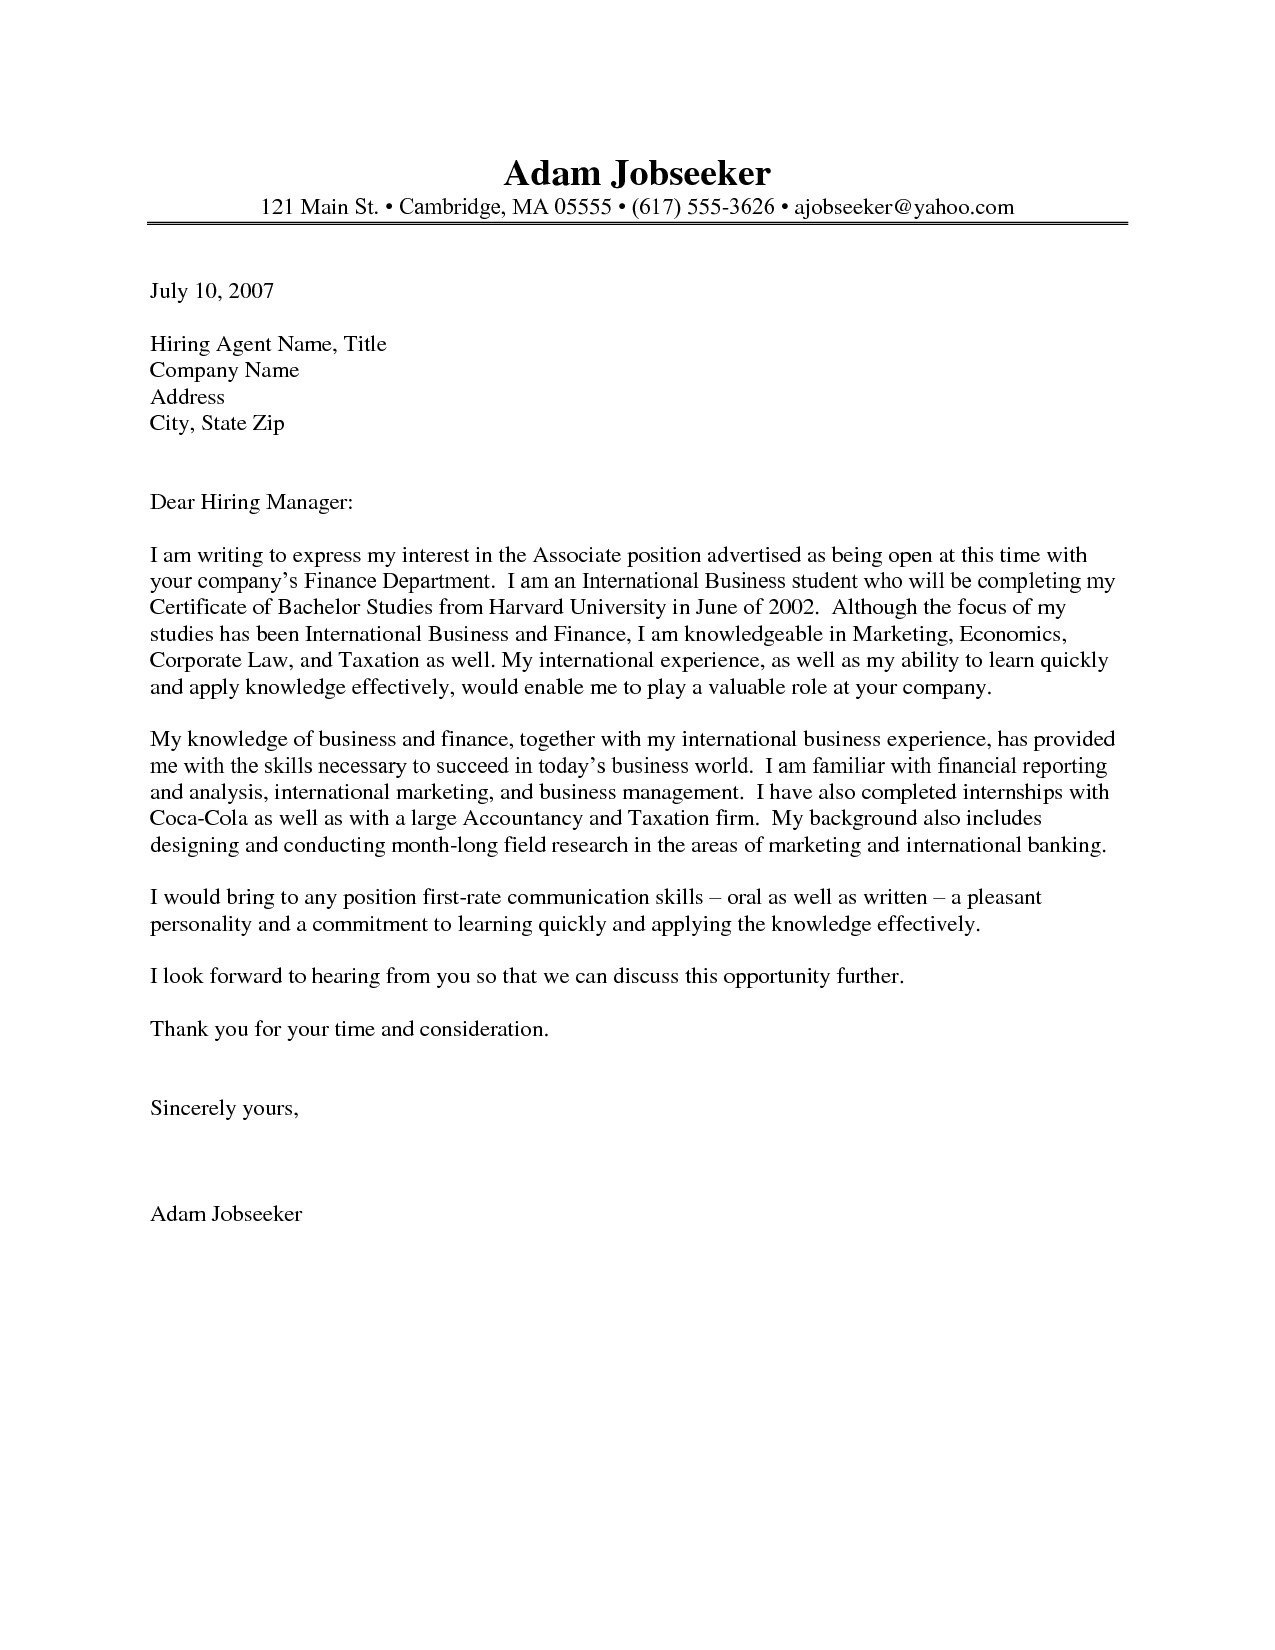 Letter Of Recommendation Template for Internship - Cover Letter Examples for Internship Fresh Cover Letter Examples for